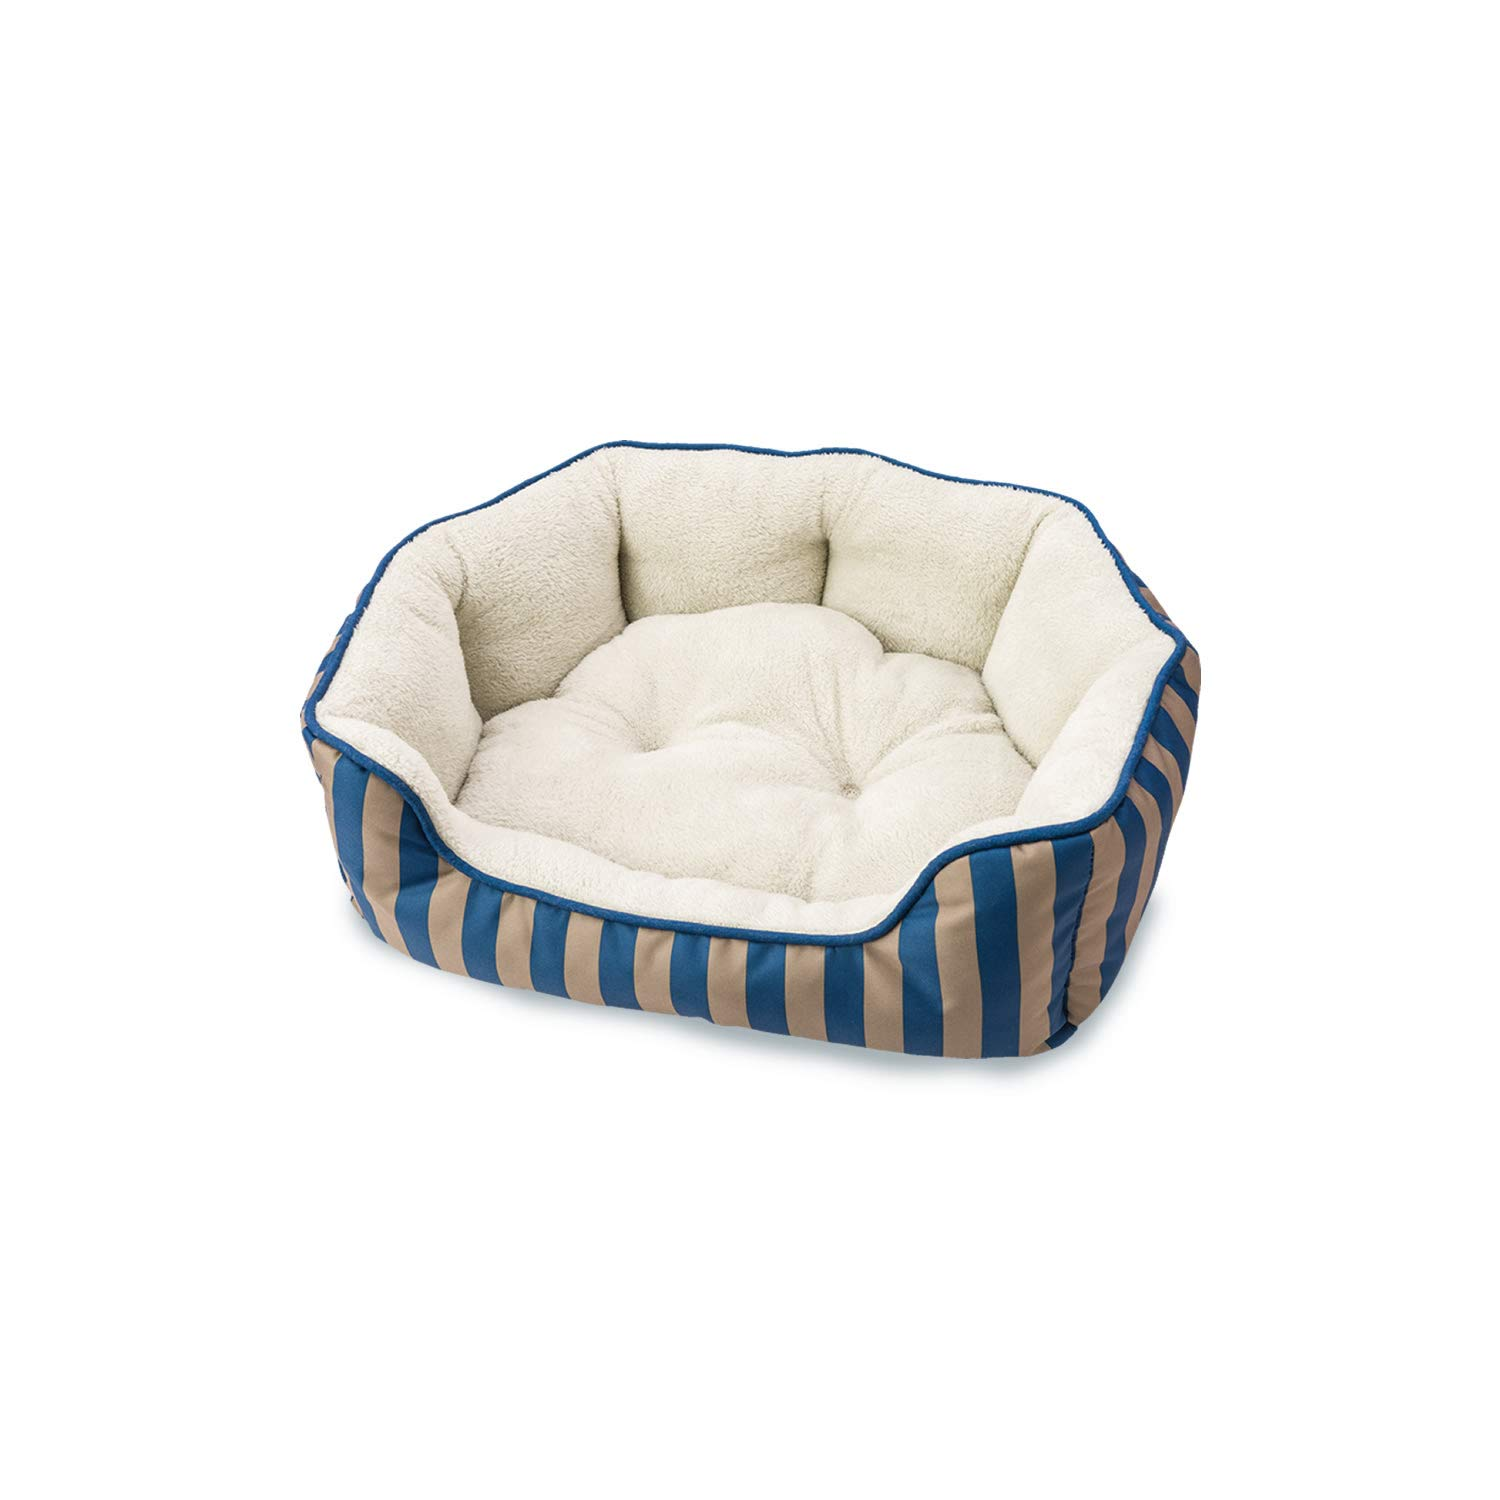 Ethical Pets 31004 Sleepzone Scallop Step in Dog Bed, 21 , bluee